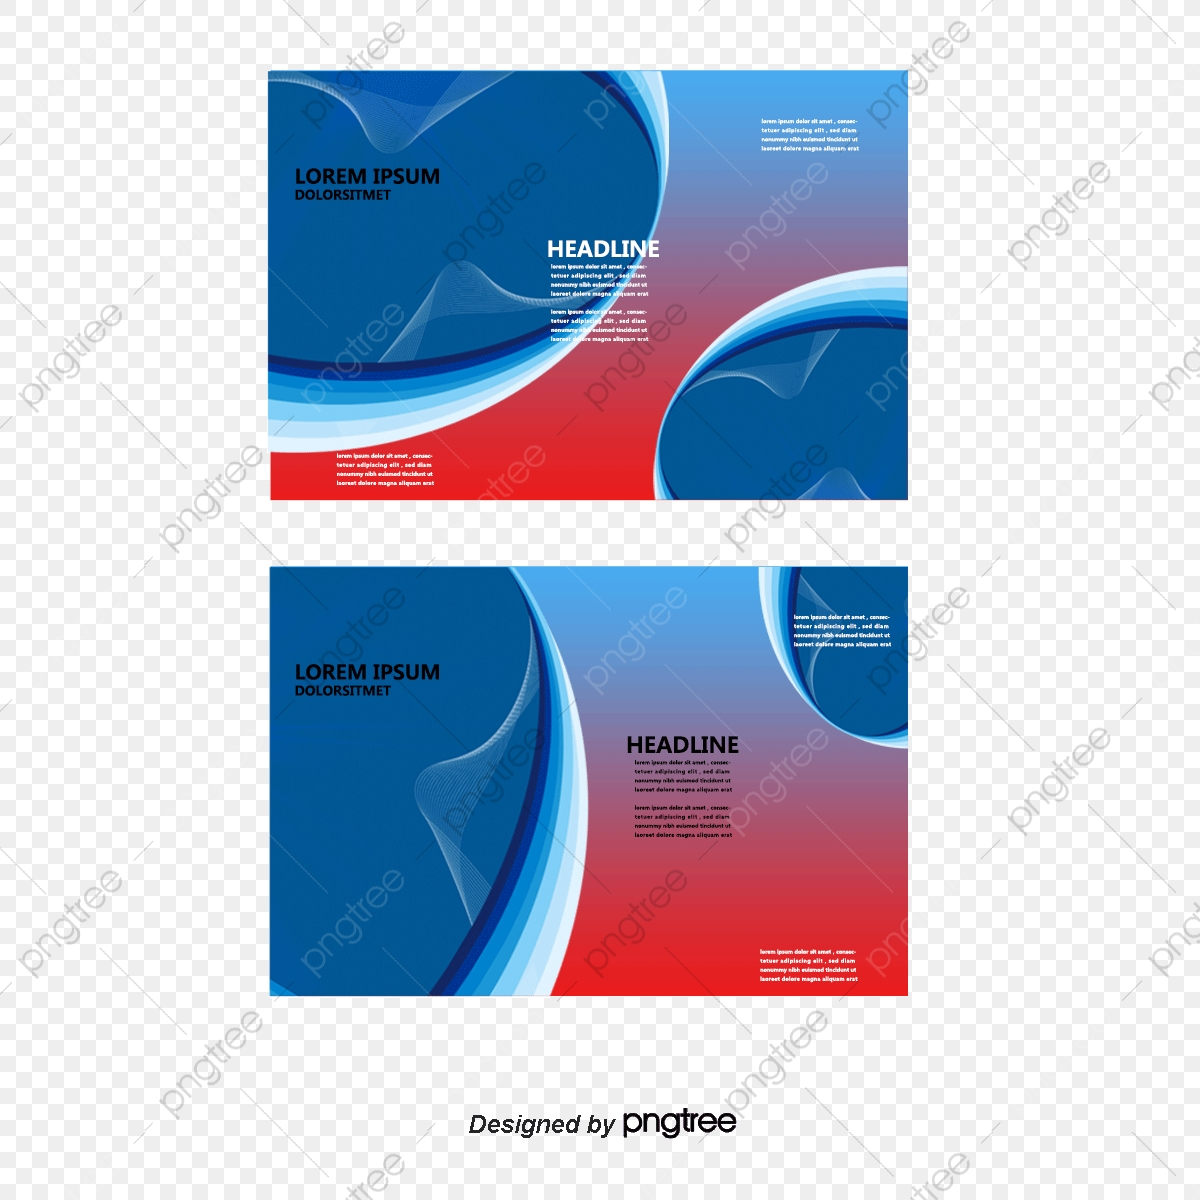 30+ Top For Brochure Design Png Free